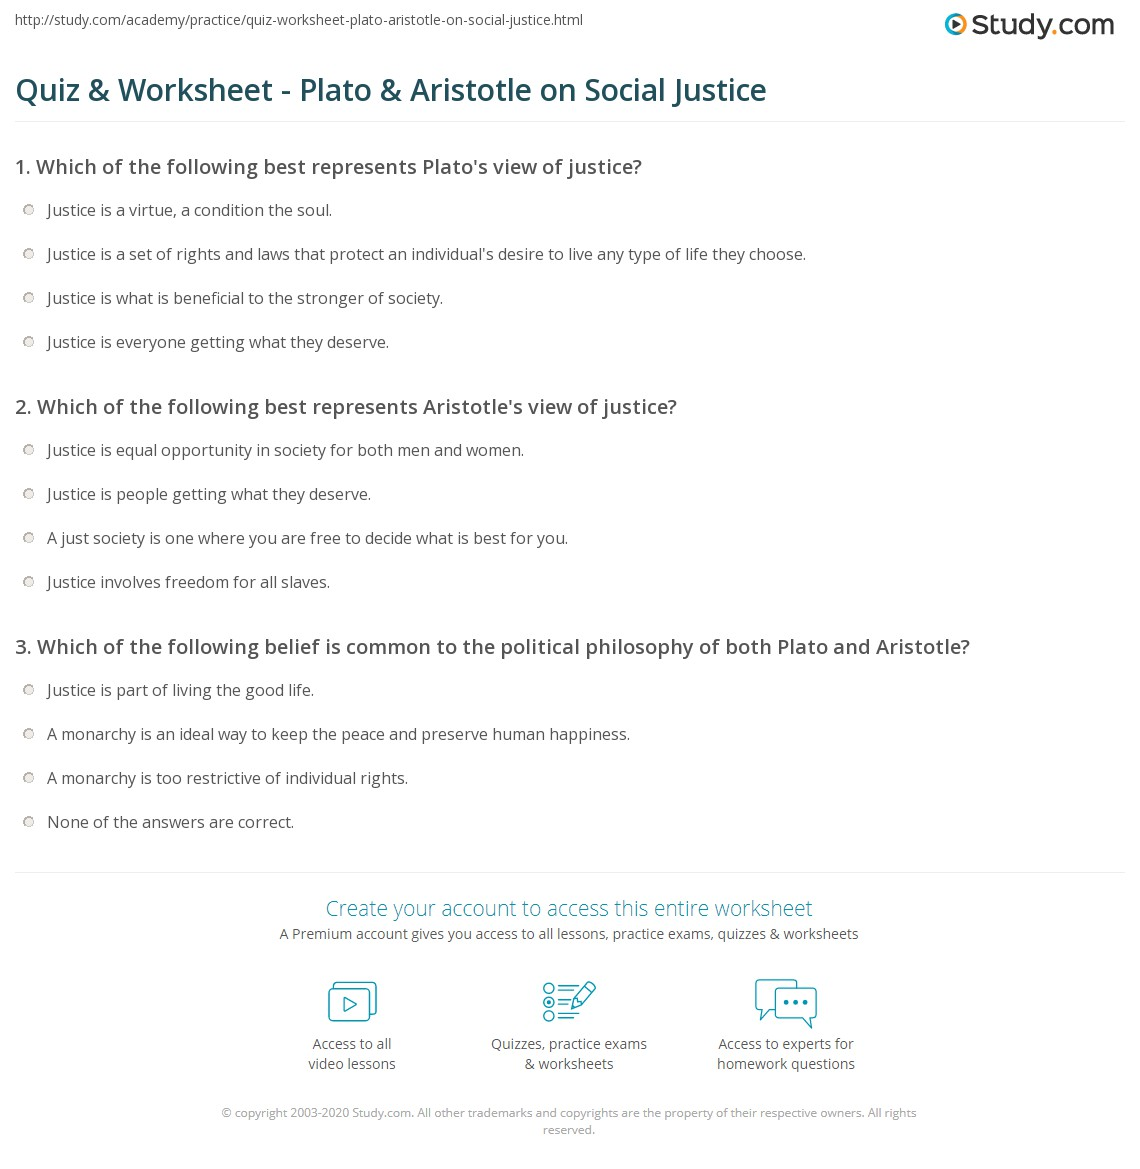 Quiz Worksheet Plato Aristotle On Social Justice